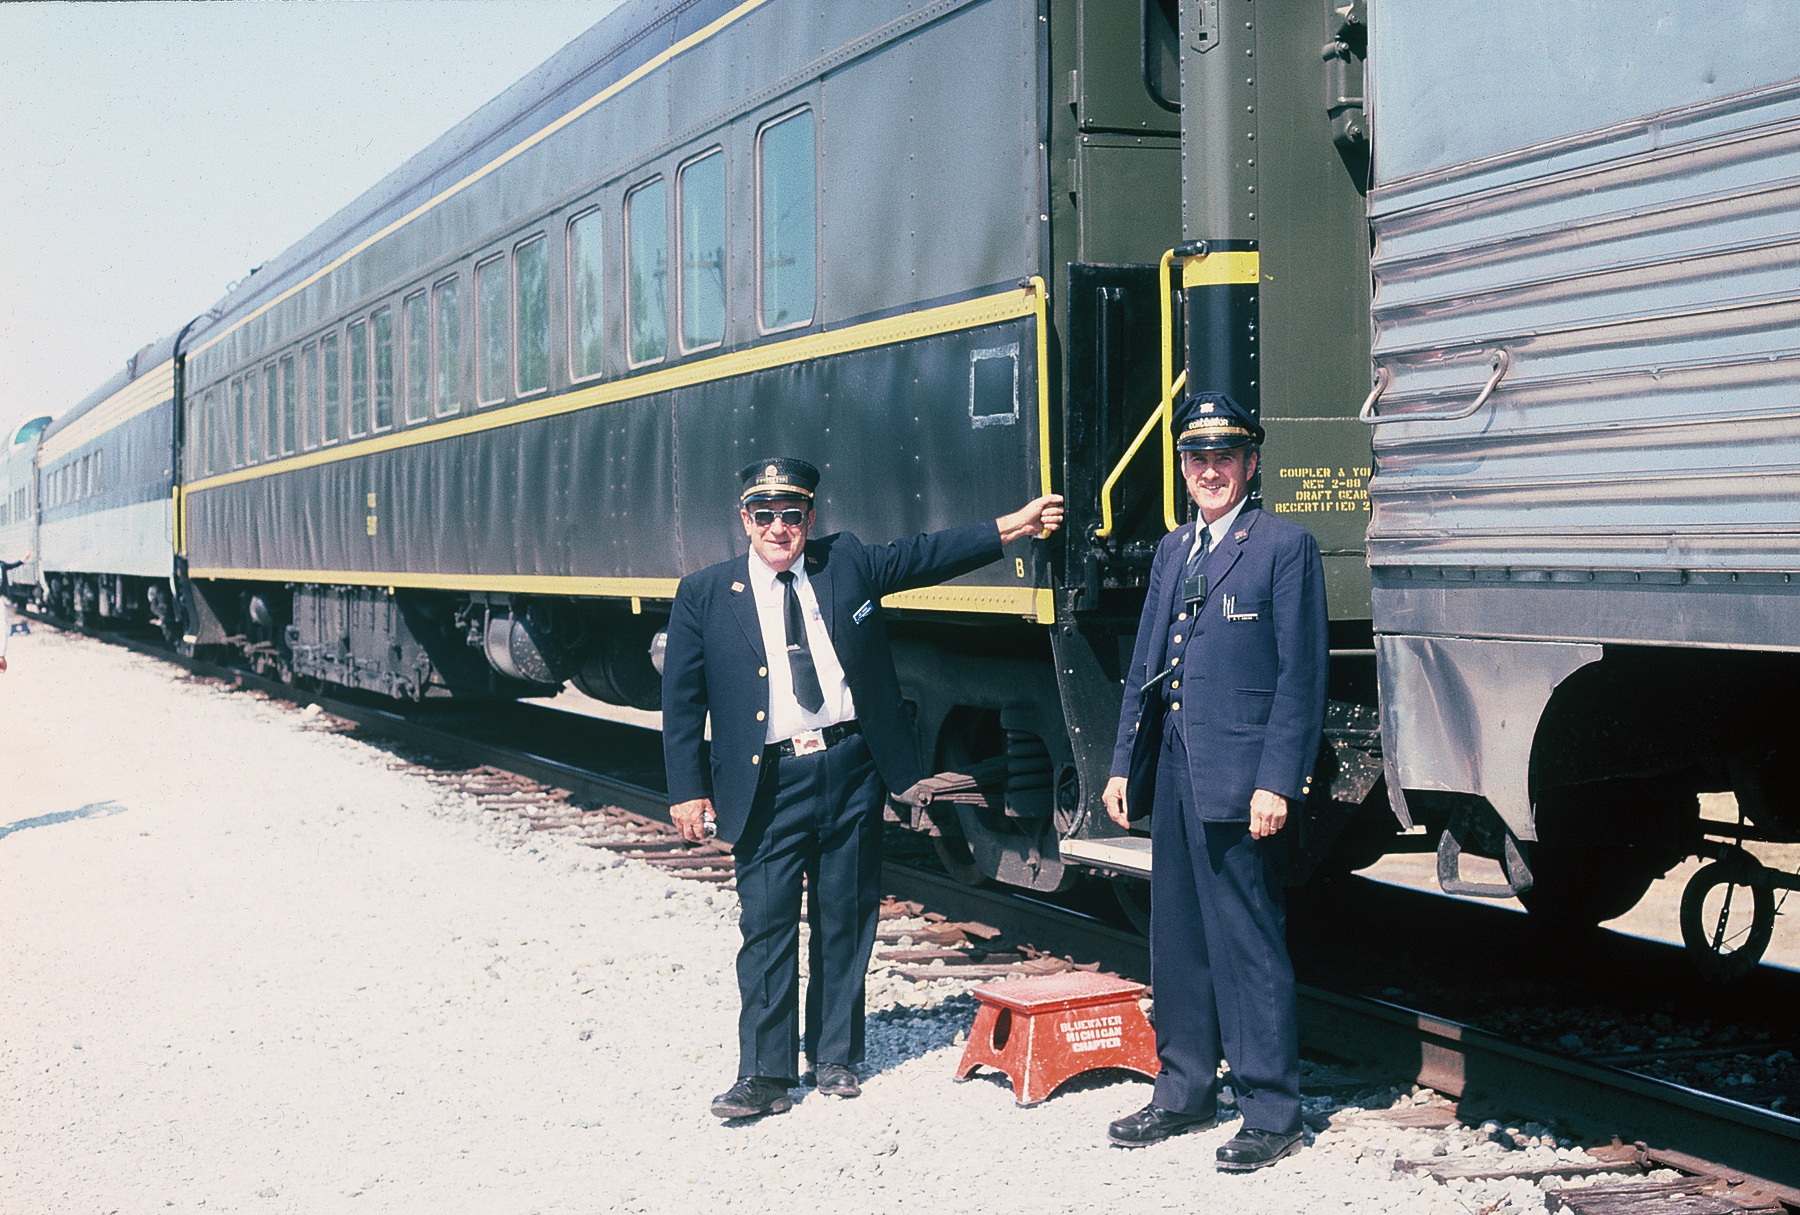 At South Amana, 9-10-88.  Joe Turkal and Russ Owens.